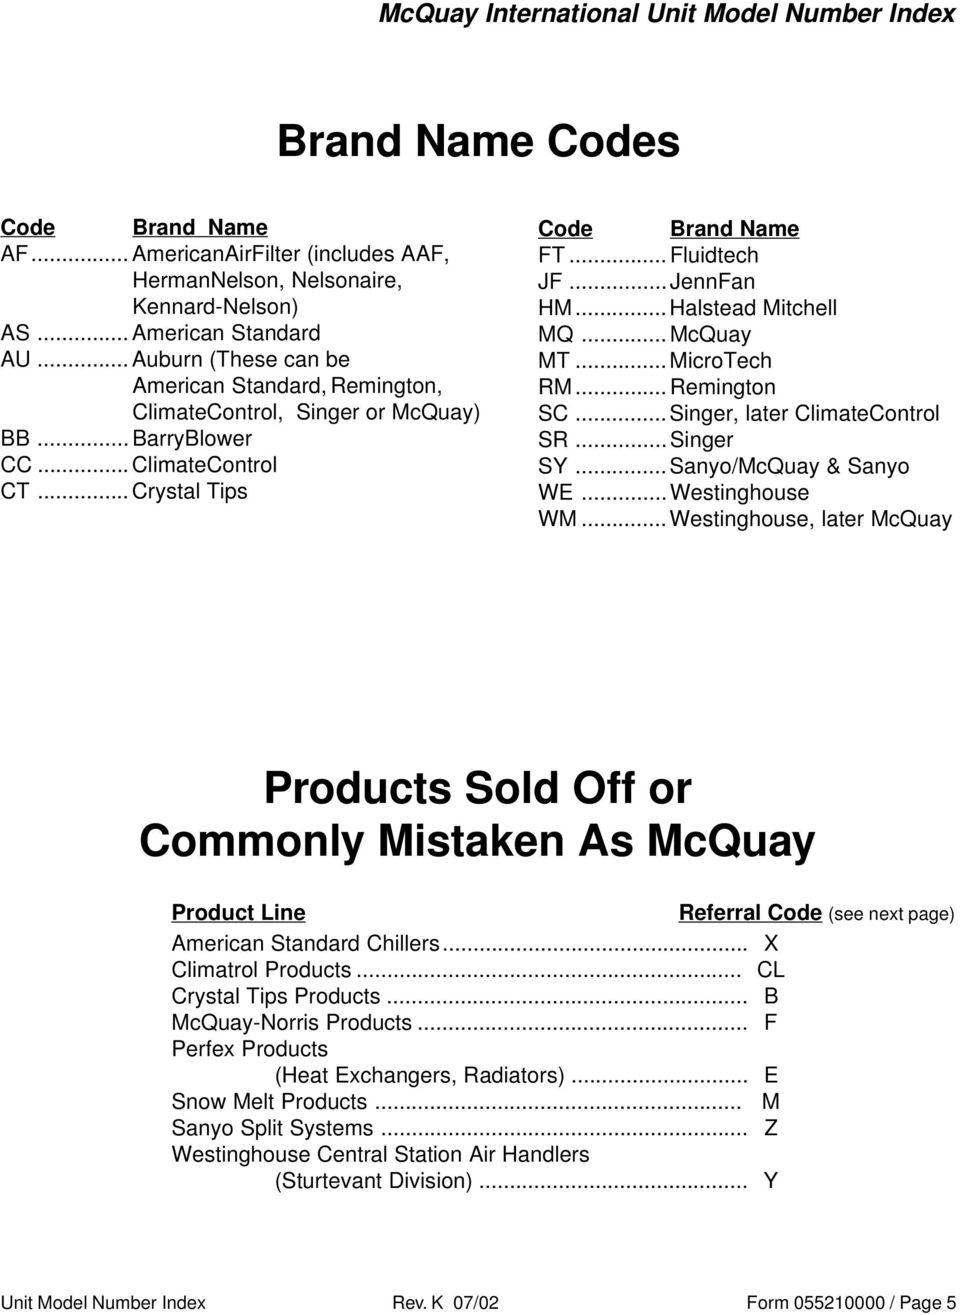 McQuay International Parts Department Unit Model Number ... on